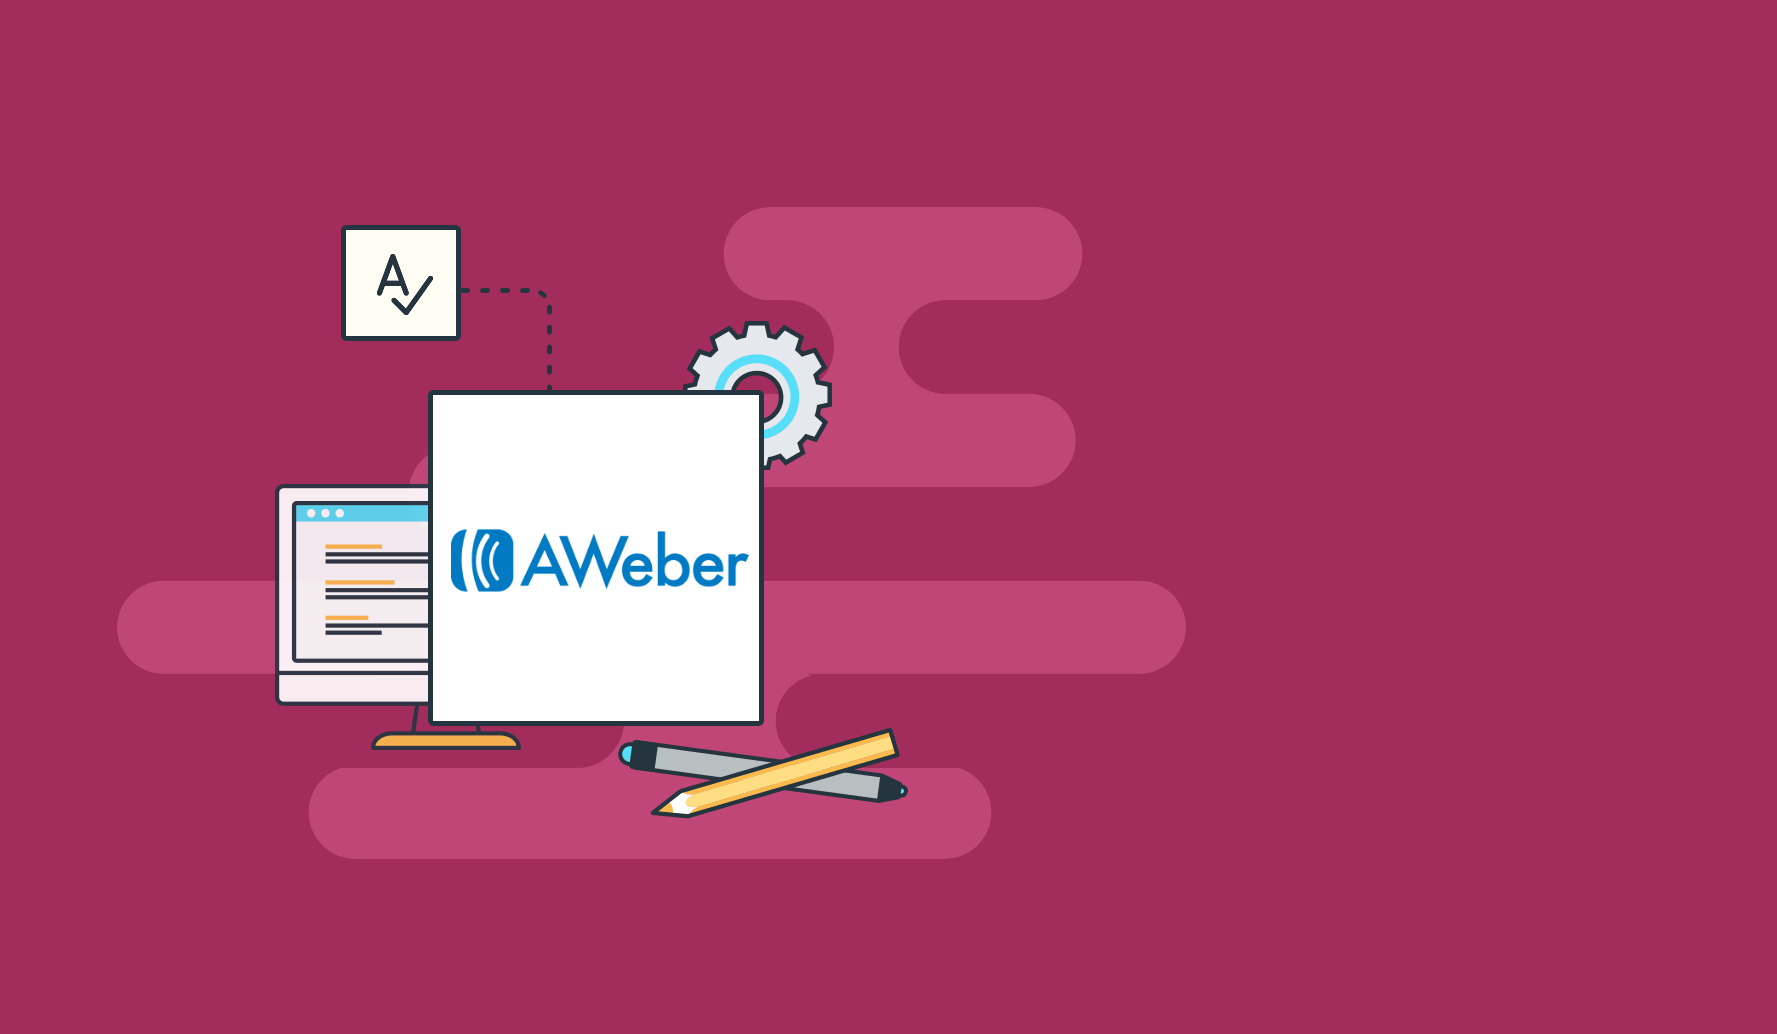 Voucher Code Printables 10 Off Aweber 2020